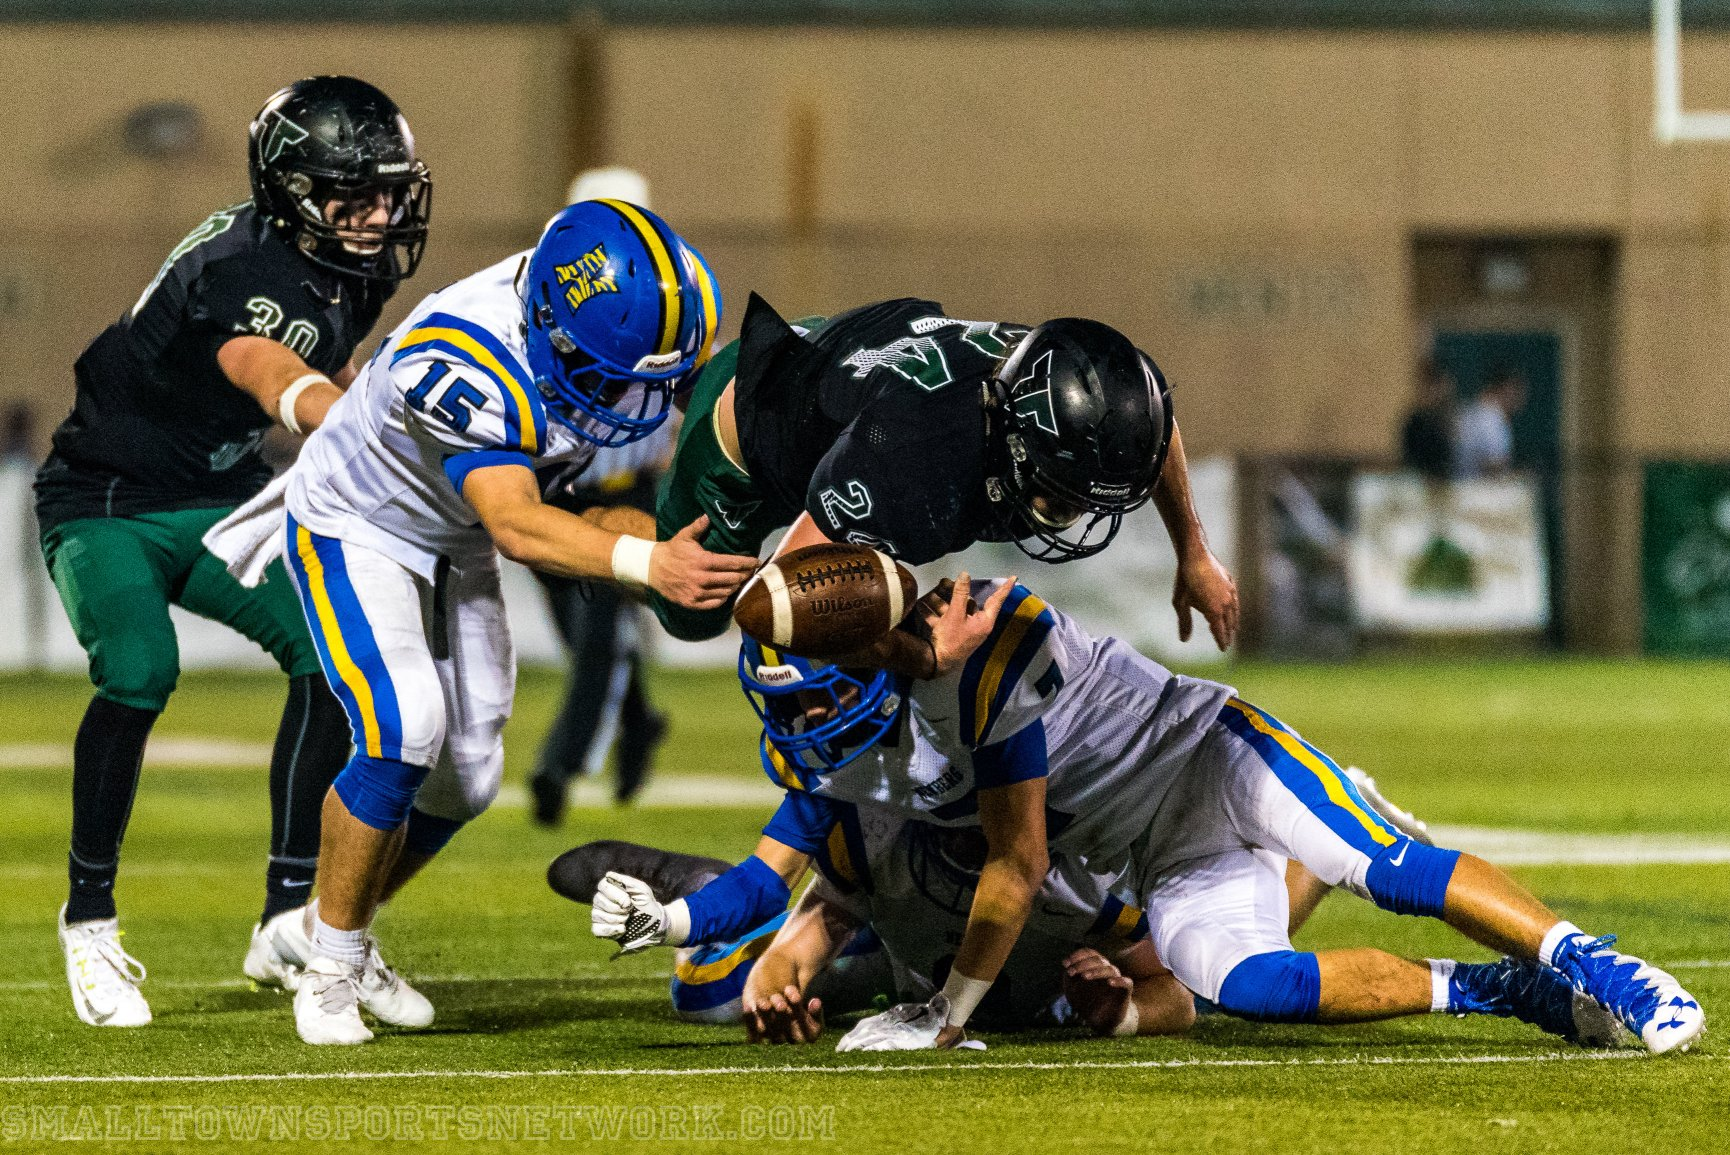 Tigard Defeats Newberg Advances to 6A Semifinals